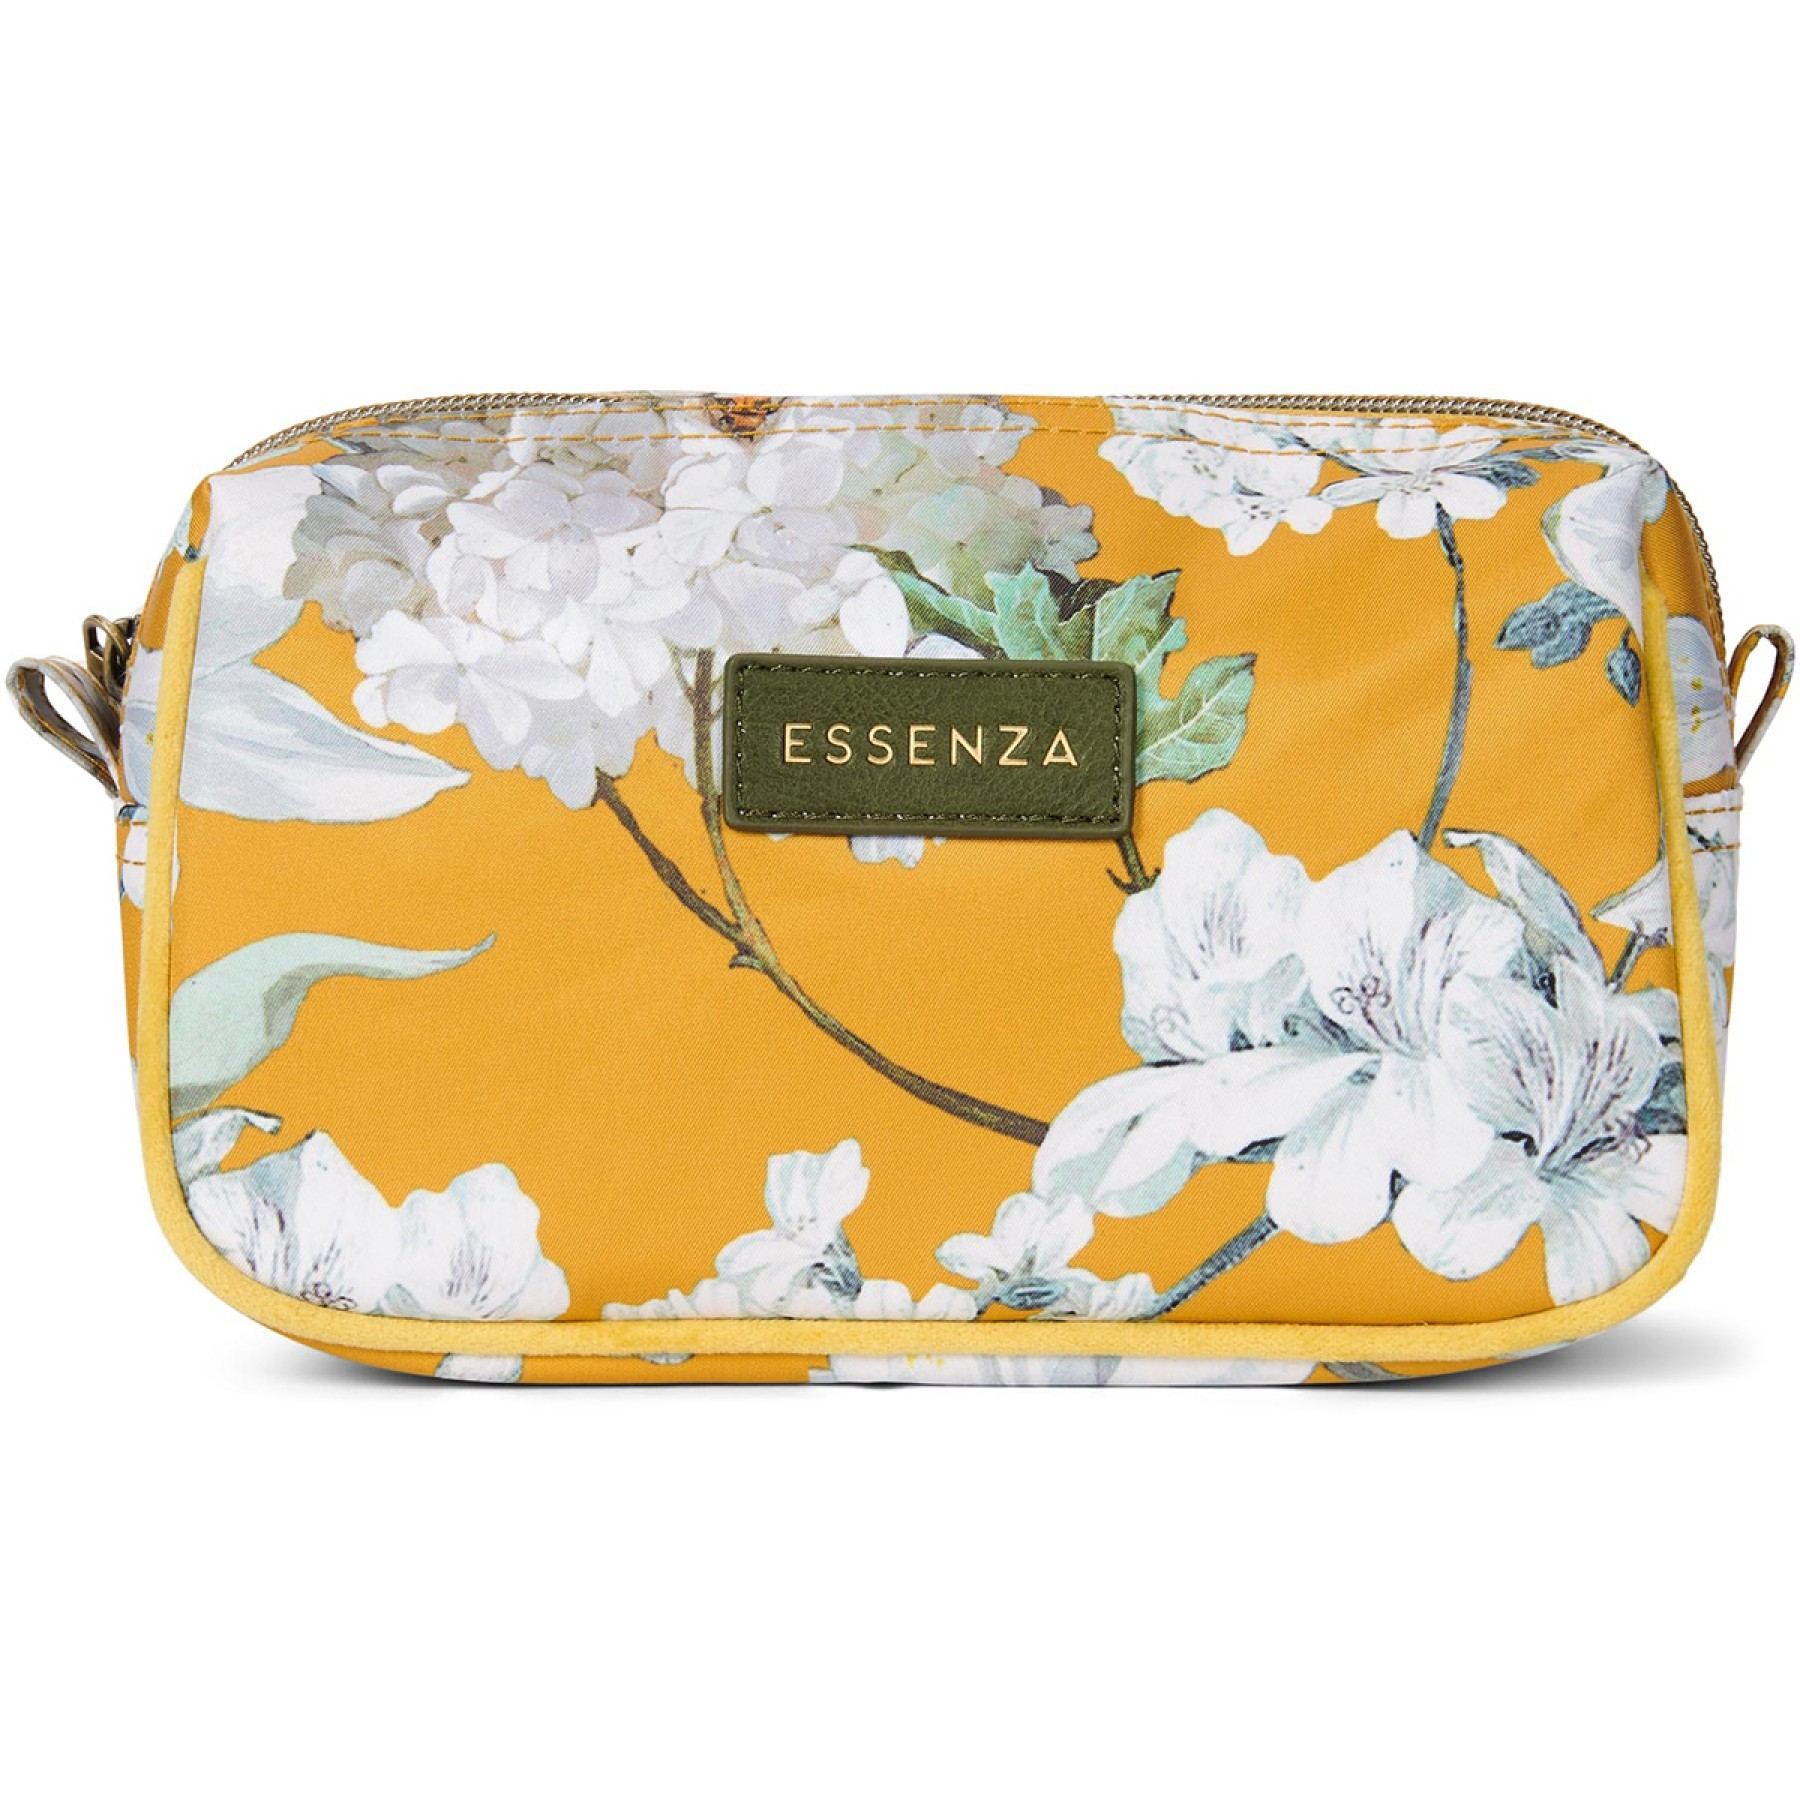 Essenza Make-up Tas Megan Rosalee